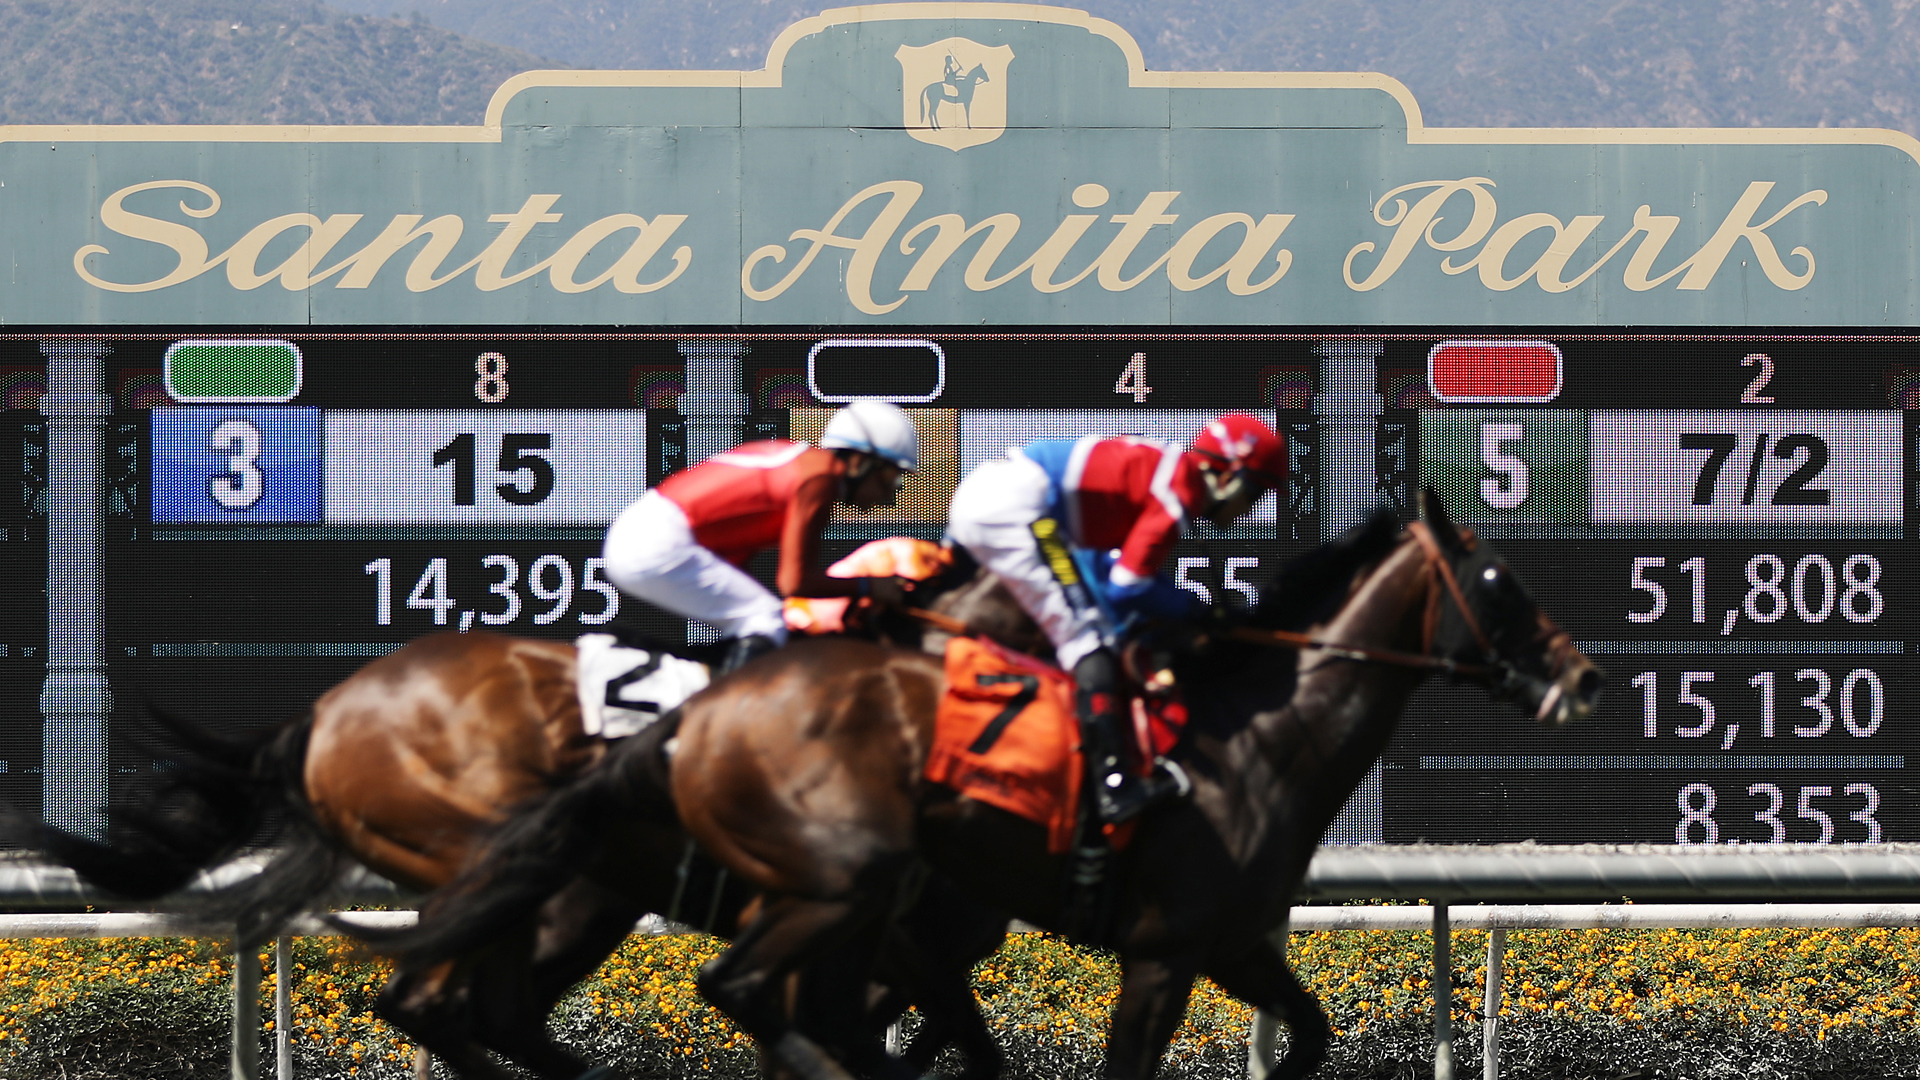 Race horses run on the final day of the winter/spring horse racing season at Santa Anita Park on June 23, 2019 in Arcadia, California. Santa Anita ownership banned a Hall of Fame trainer yesterday following the death of a fourth horse from his stable at the track. It was the 30th race horse to die at the famed racetrack since December 26. (Credit: Mario Tama/Getty Images)